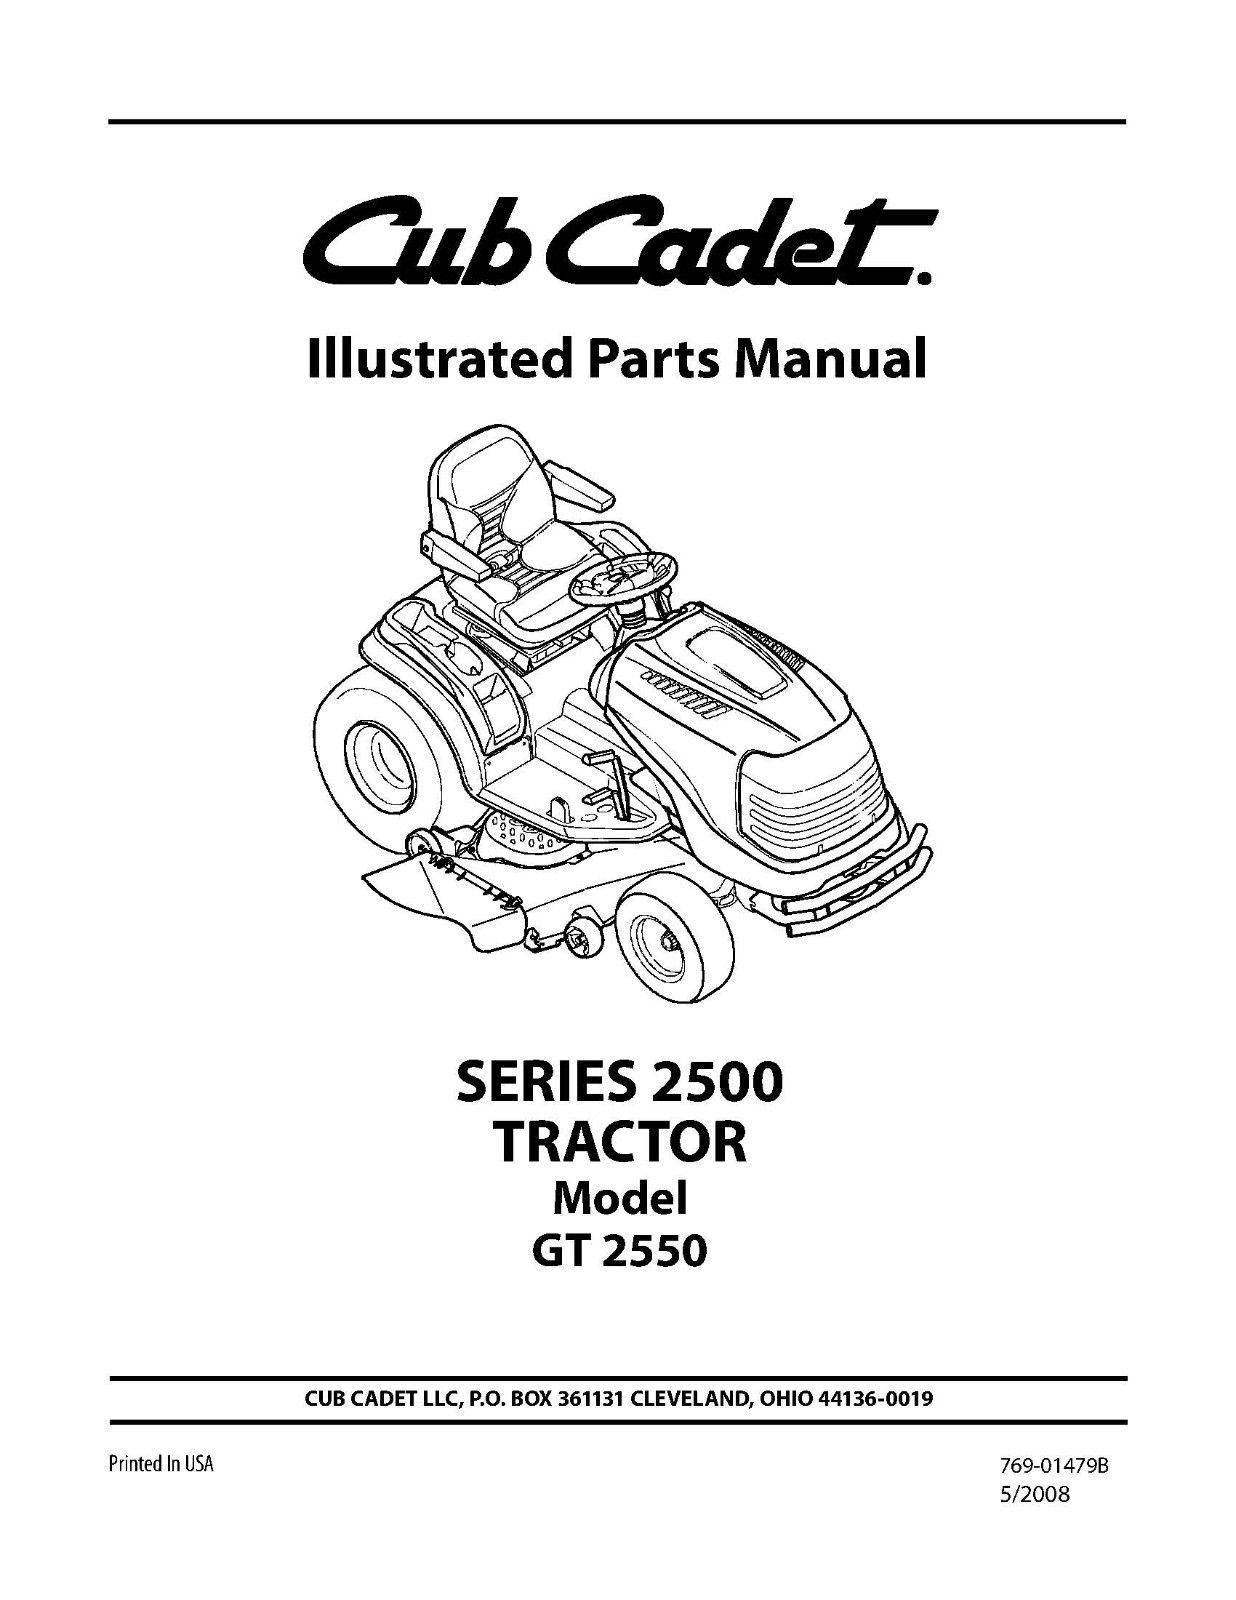 Cub Cadet Parts Manual Model No. GT 2550